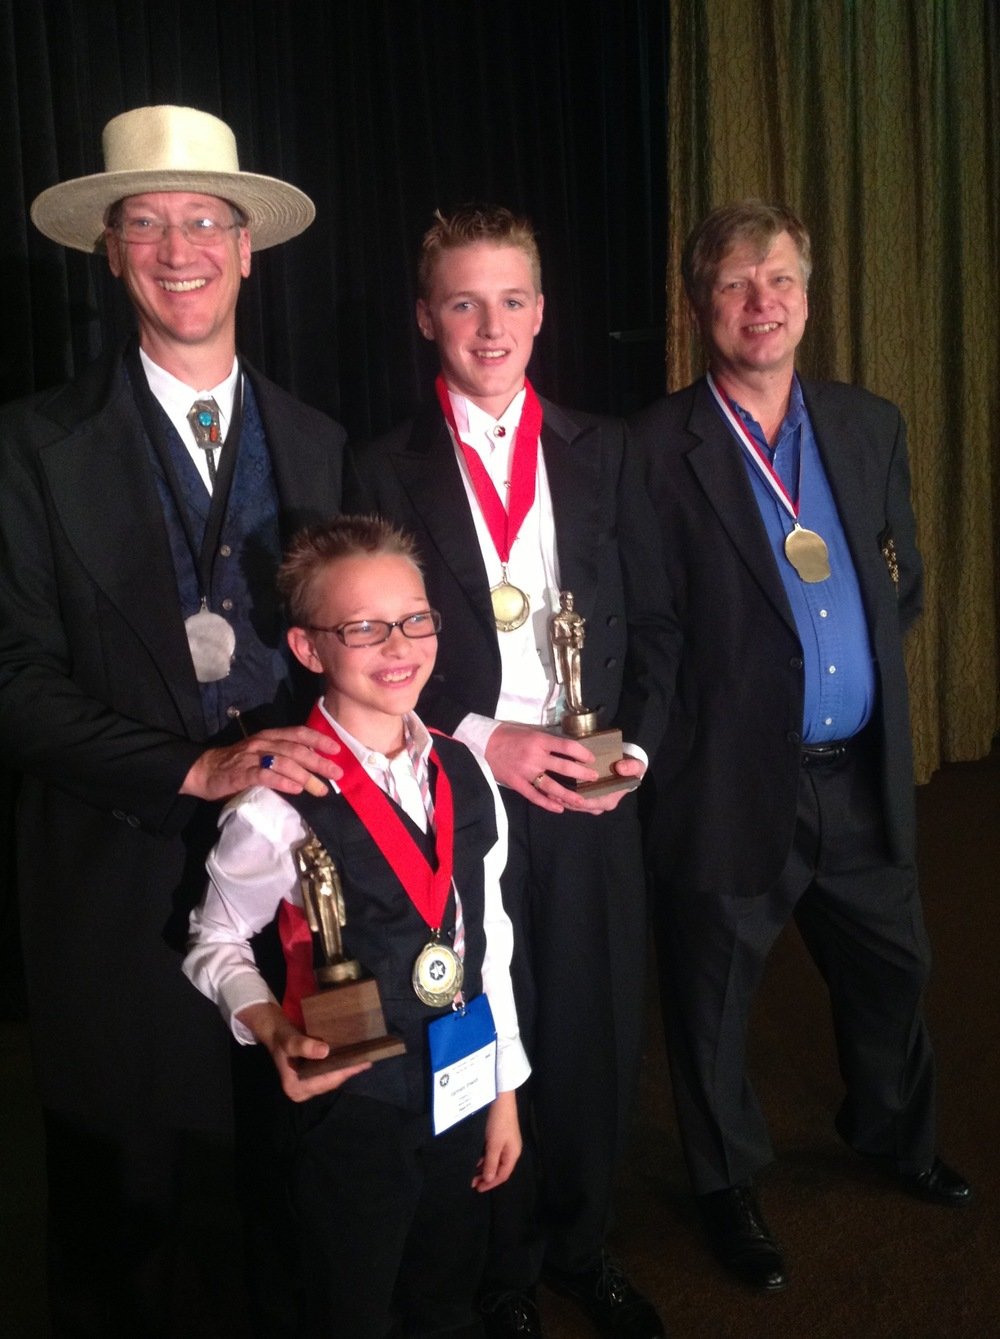 Jr. Co-Winners James Irwin and Chase Hasty with Bill Irwin and Mark Jensen